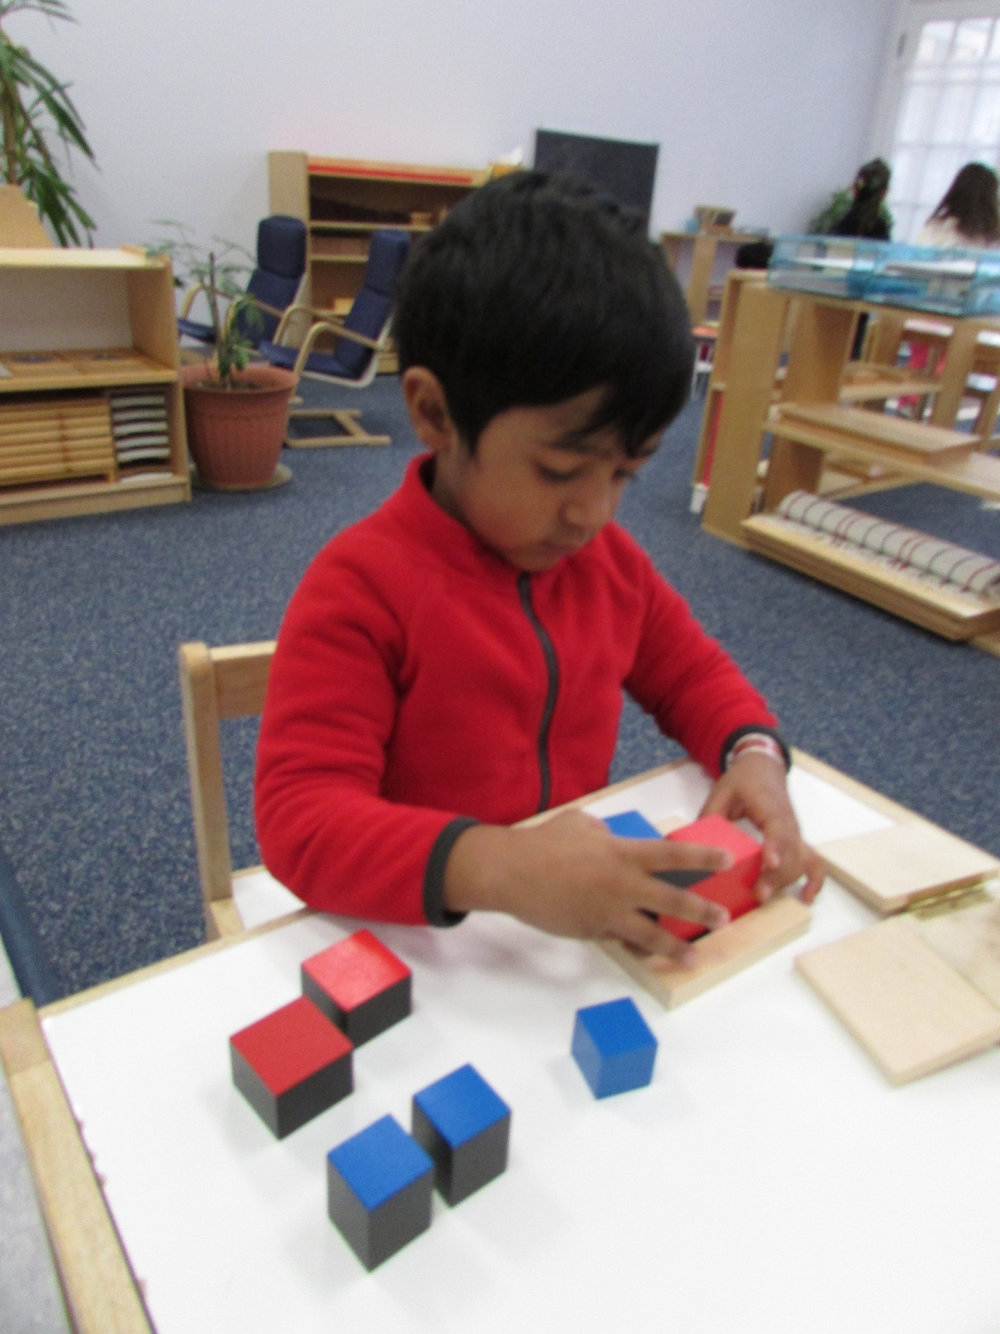 The purpose of the Binomial Cube is not to teach Math, but instead to provide a challenge for a Primary 3 student's ability to find patterns and relationships. Therefore, the material is presented as a Sensorial activity.  In later years the students will learn to use the same material for Algebra.